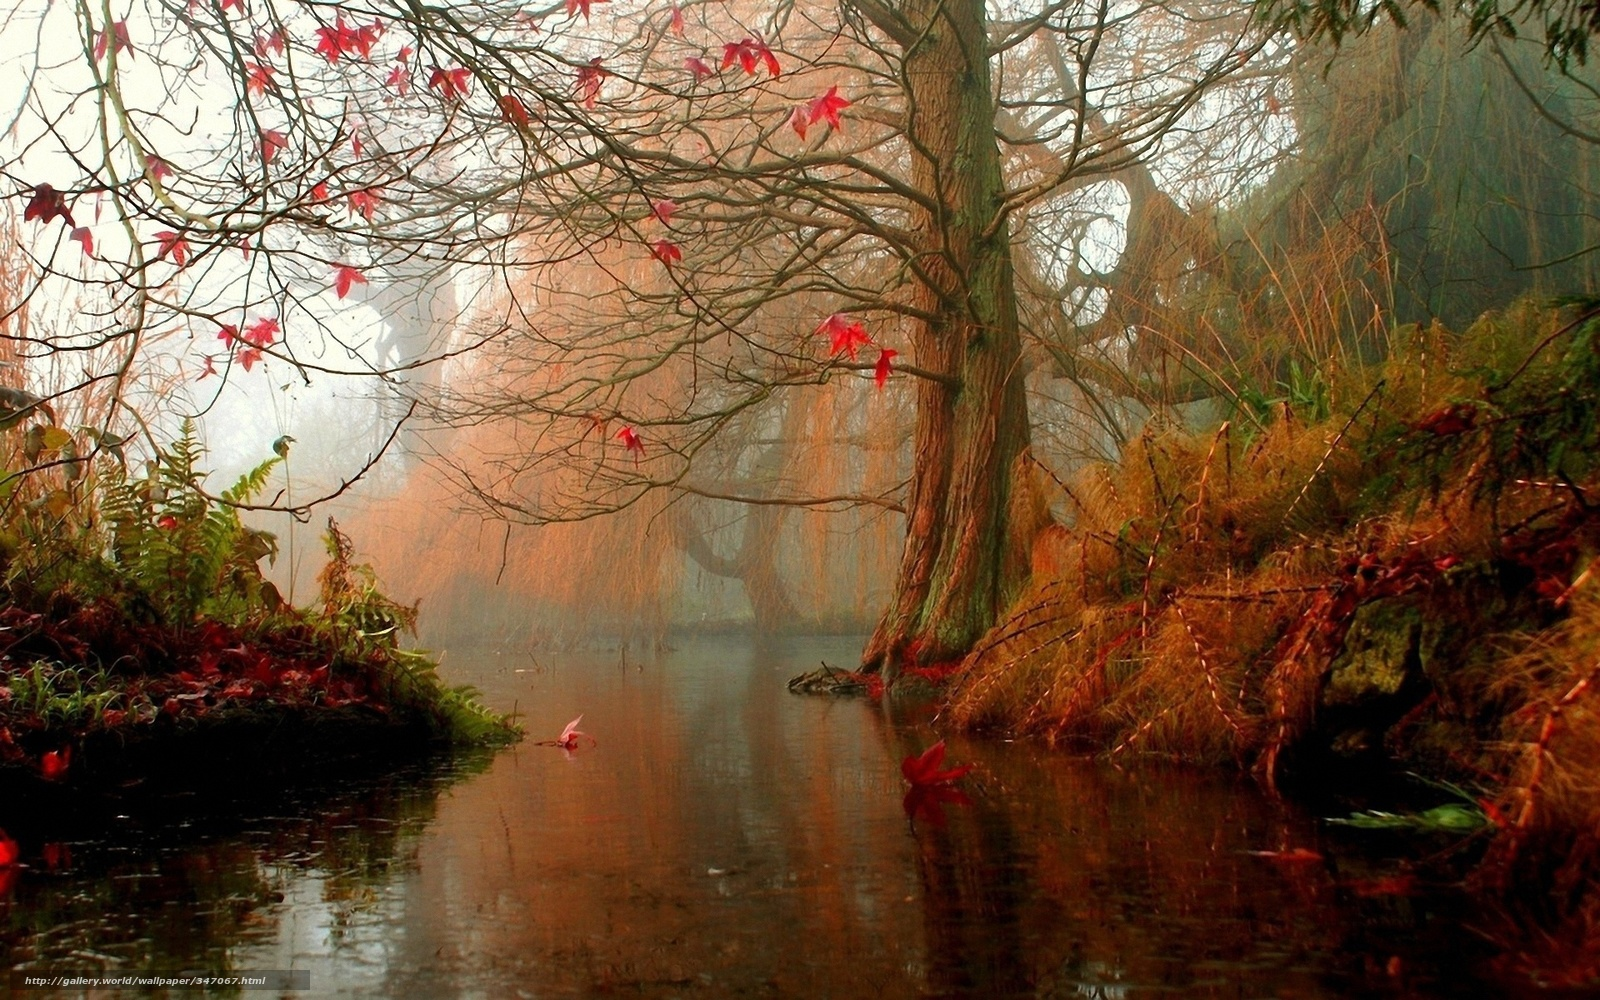 Download wallpaper autumn, forest, river free desktop wallpaper in